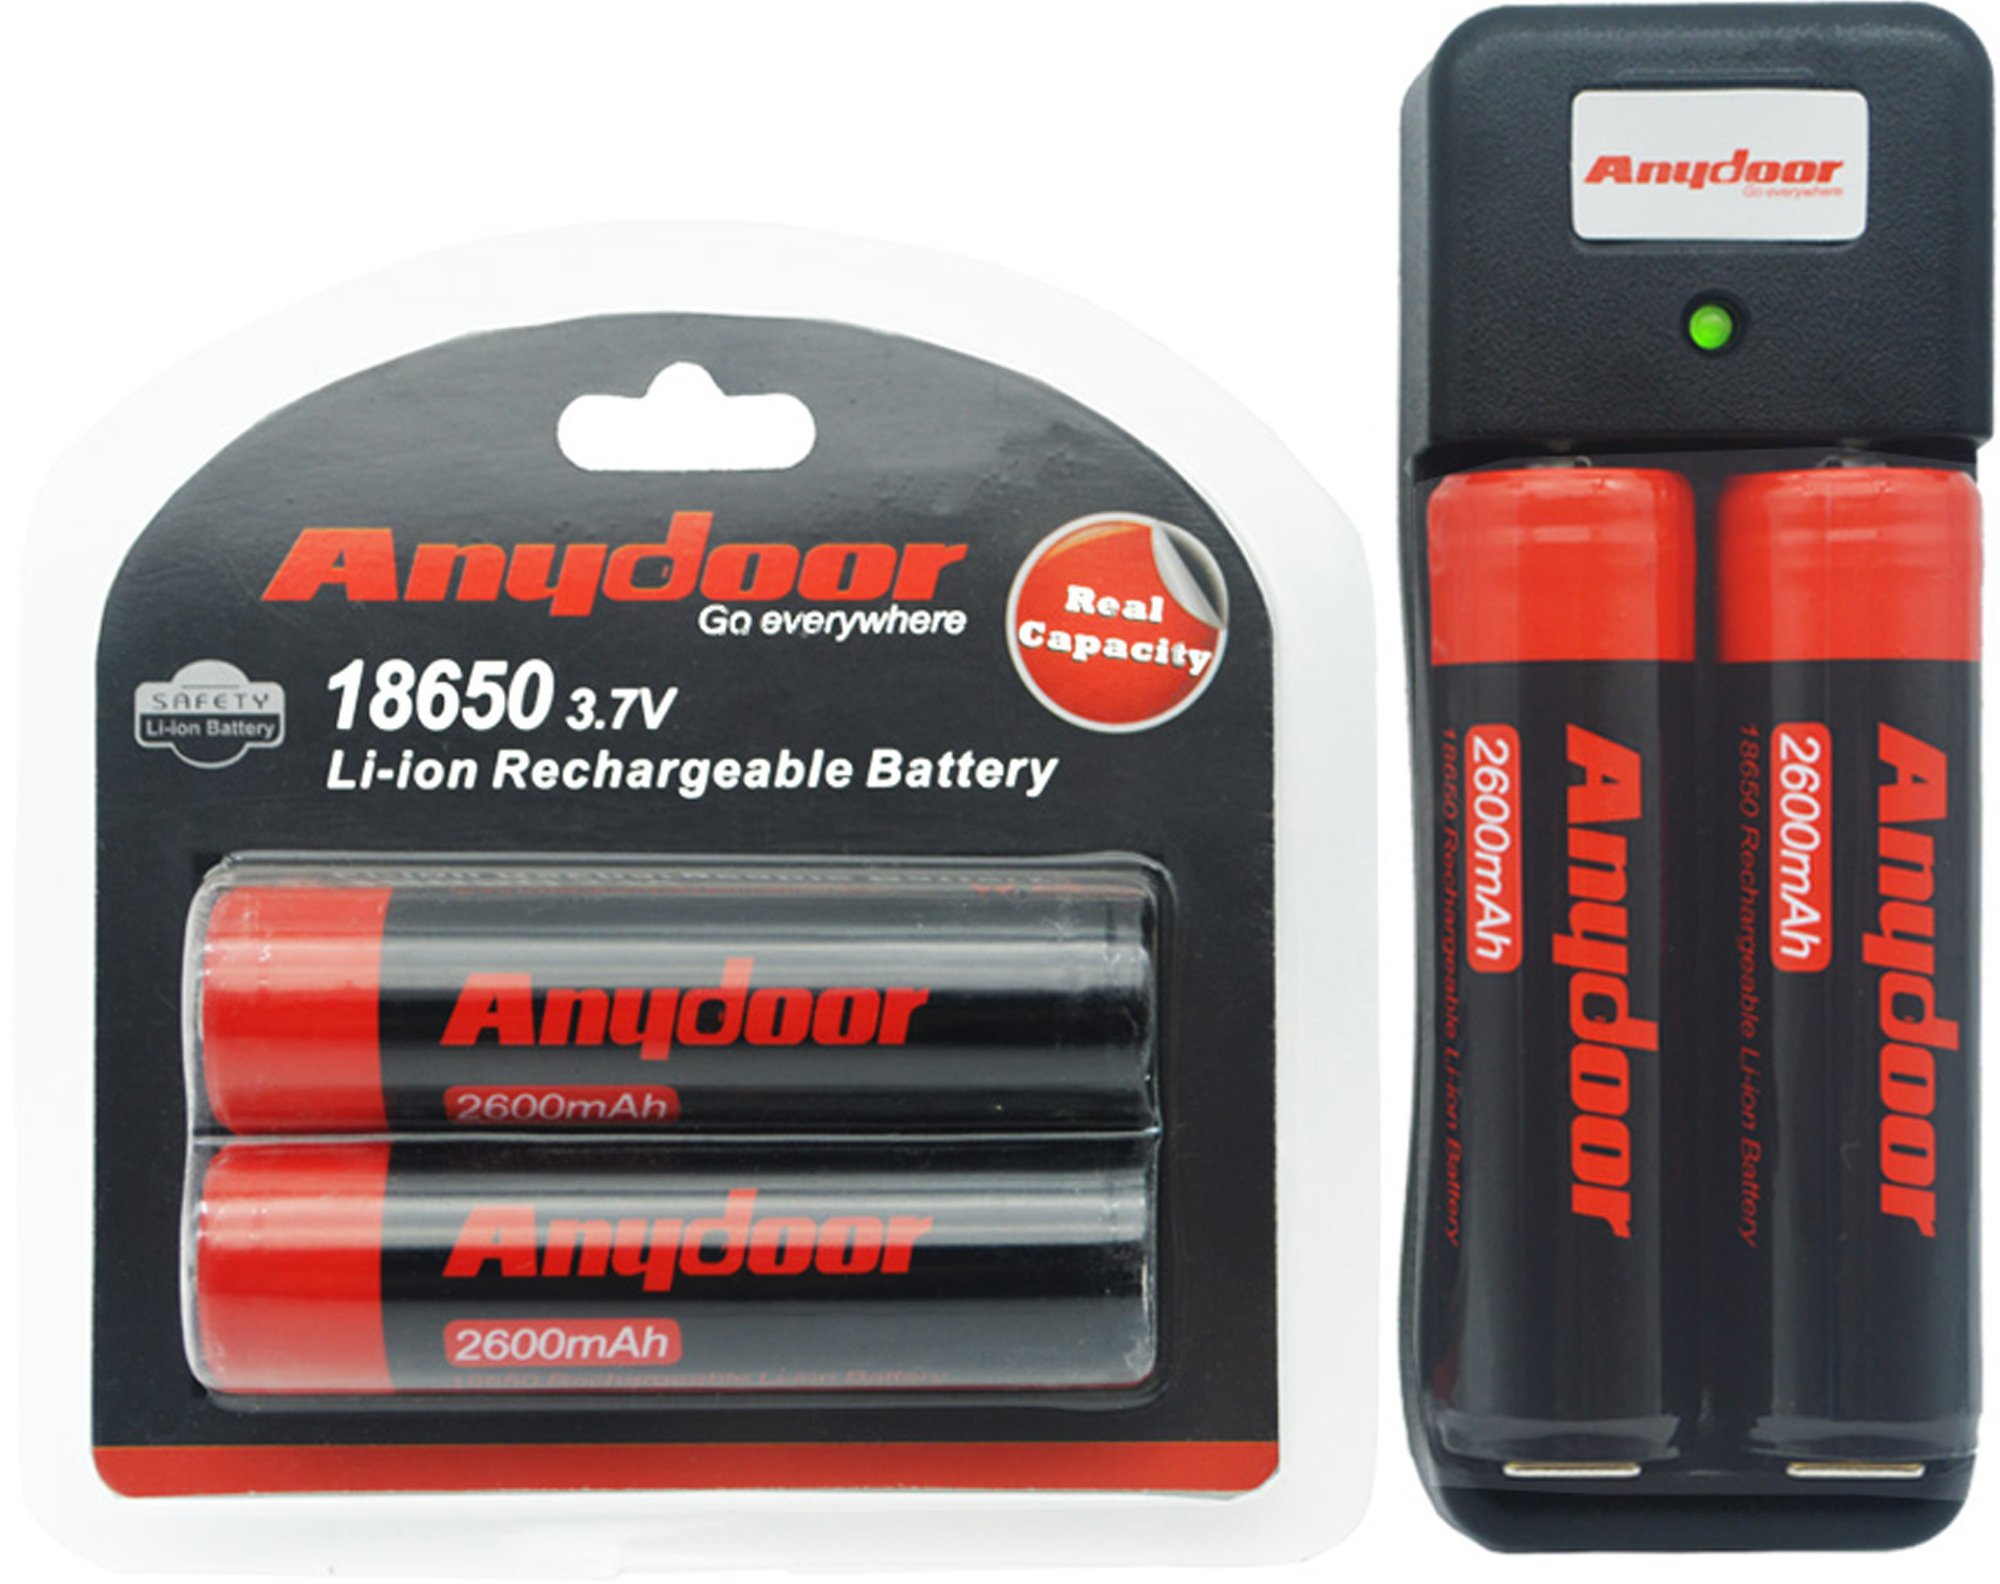 Anydoor 18650 Rechargeable Li-ion Battery with PCB Protected 3.7v 2600mAh High Capactiy 4pcs for Flashlight with Charger